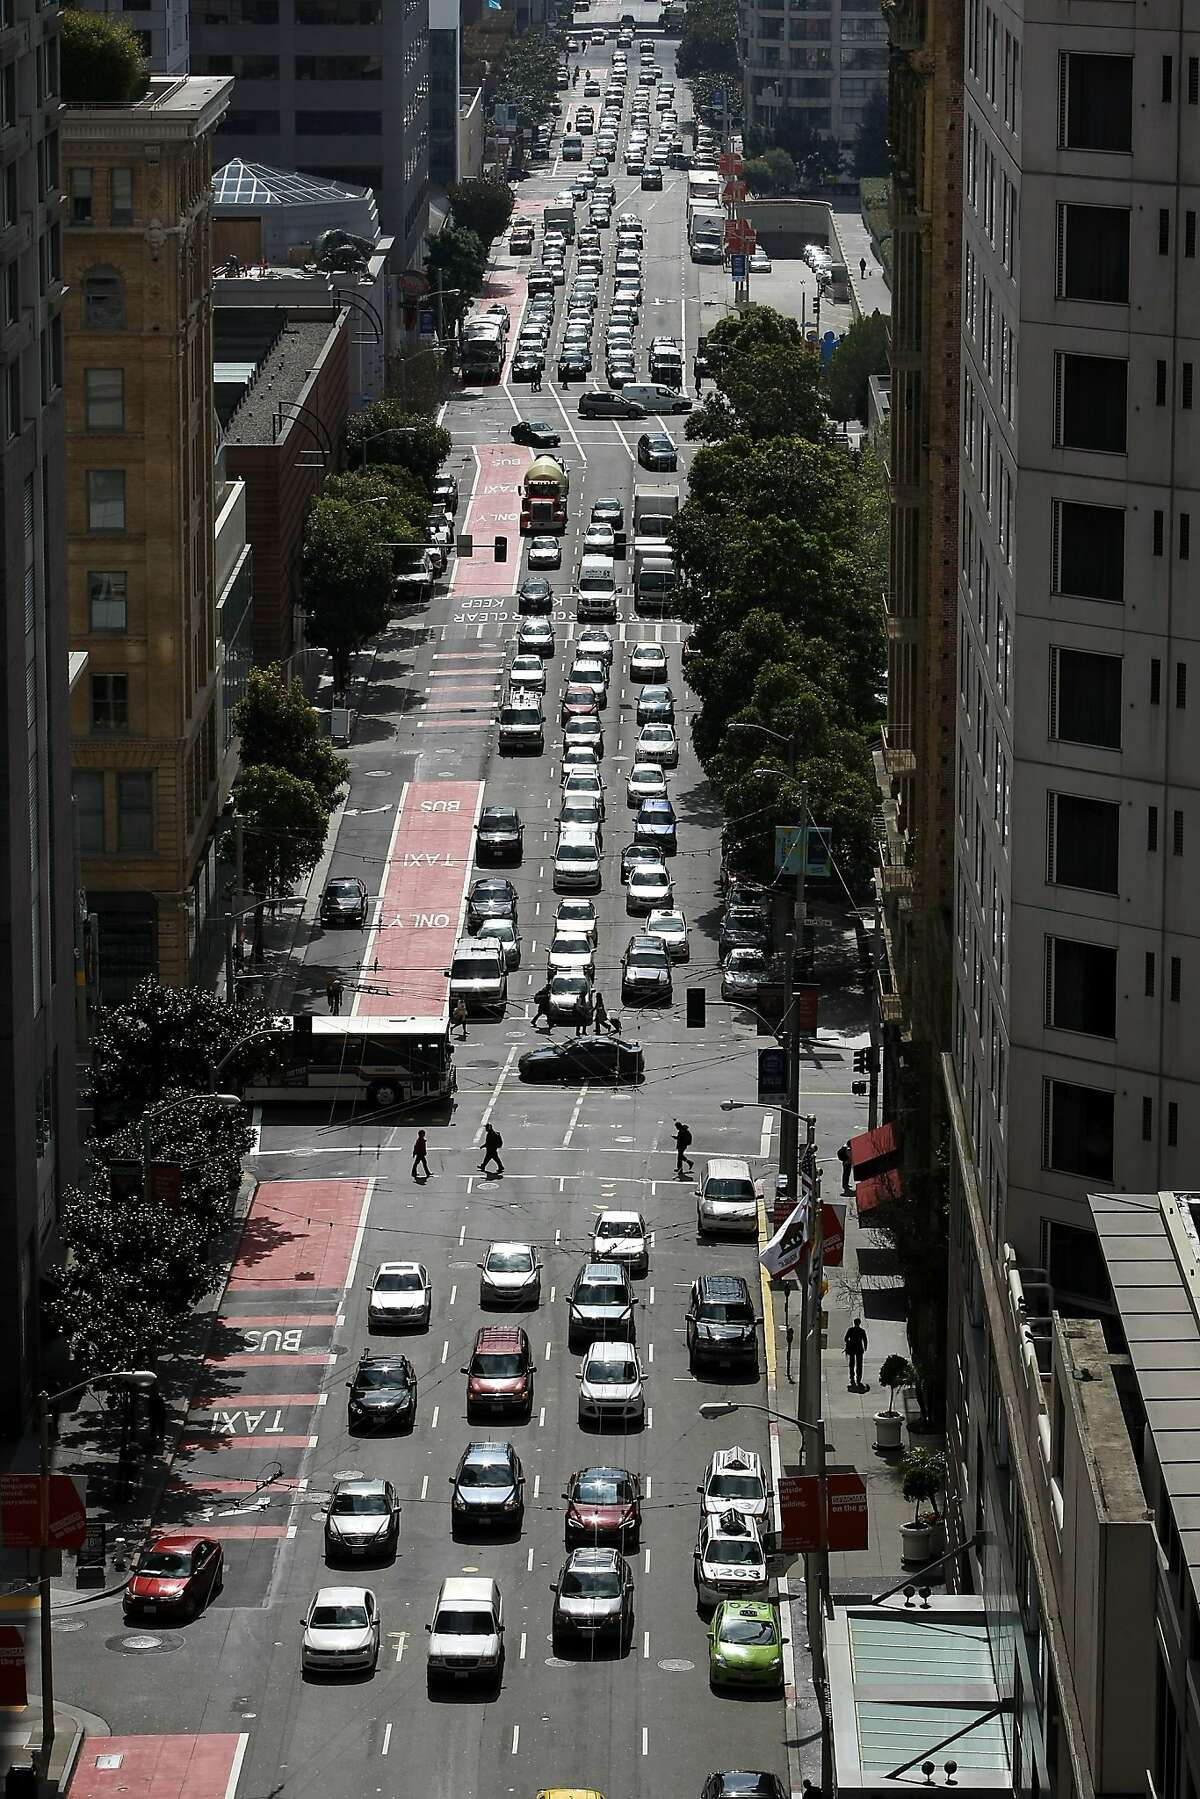 Traffic is seen backed up on 3rd St. in downtown San Francisco, CA, Thursday April 3, 2014.